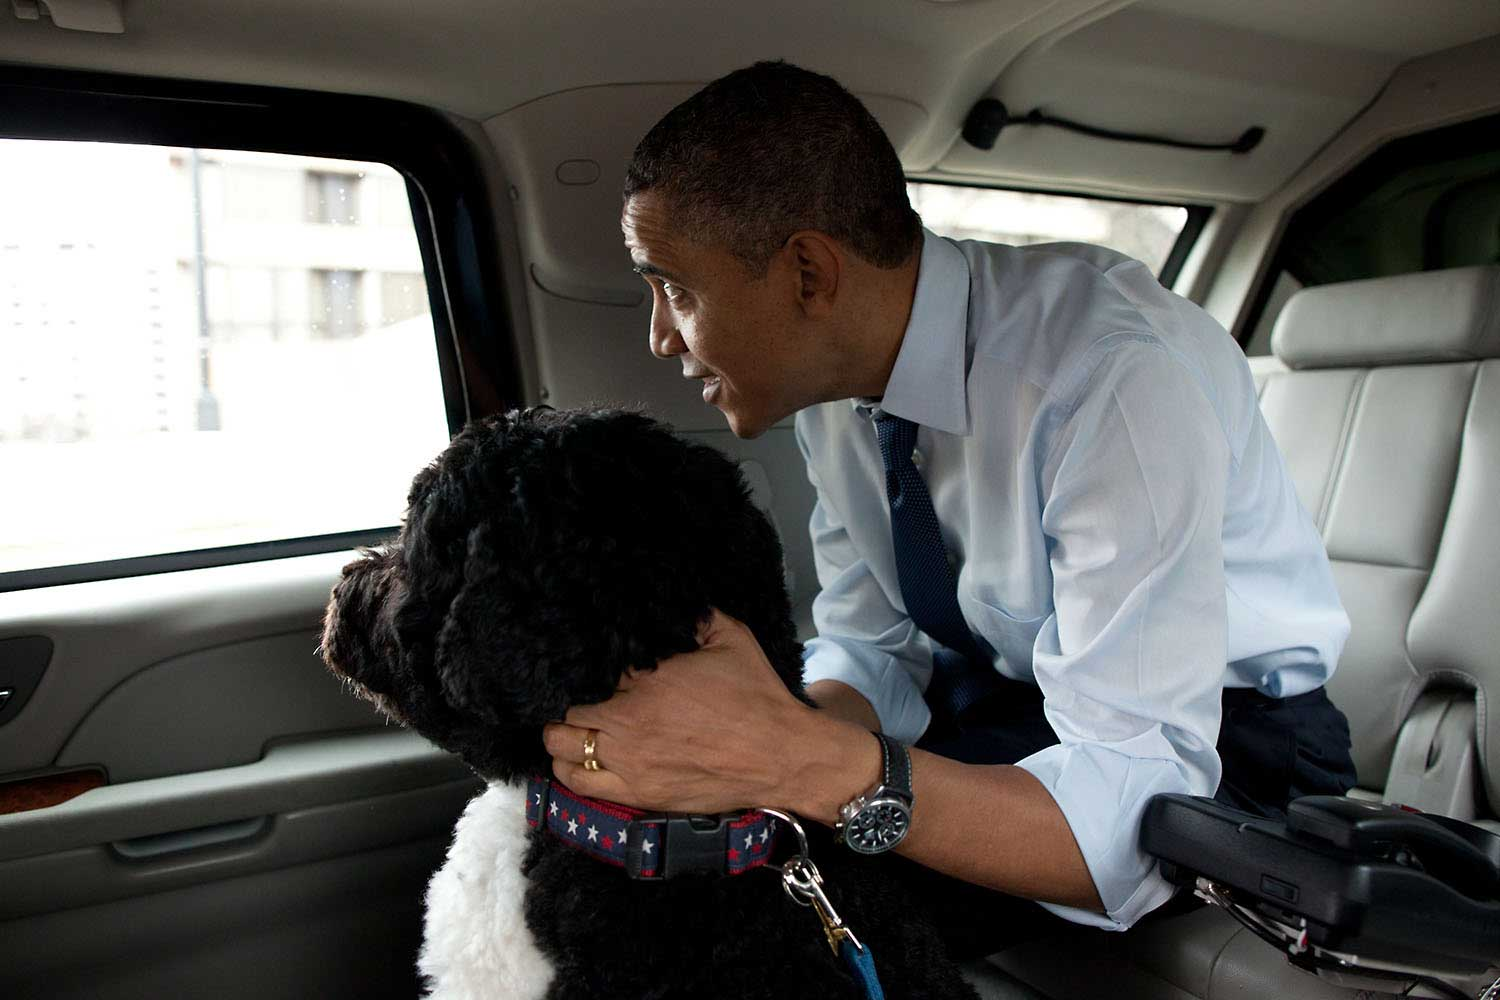 The President and Bo, the Obama family dog, ride in the presidential motorcade en route to PetSmart in Alexandria, Va. The President bought Bo some Christmas gifts at the pet store then walked nearby to Best Buy to purchase gifts for his daughters, Dec. 21, 2011.